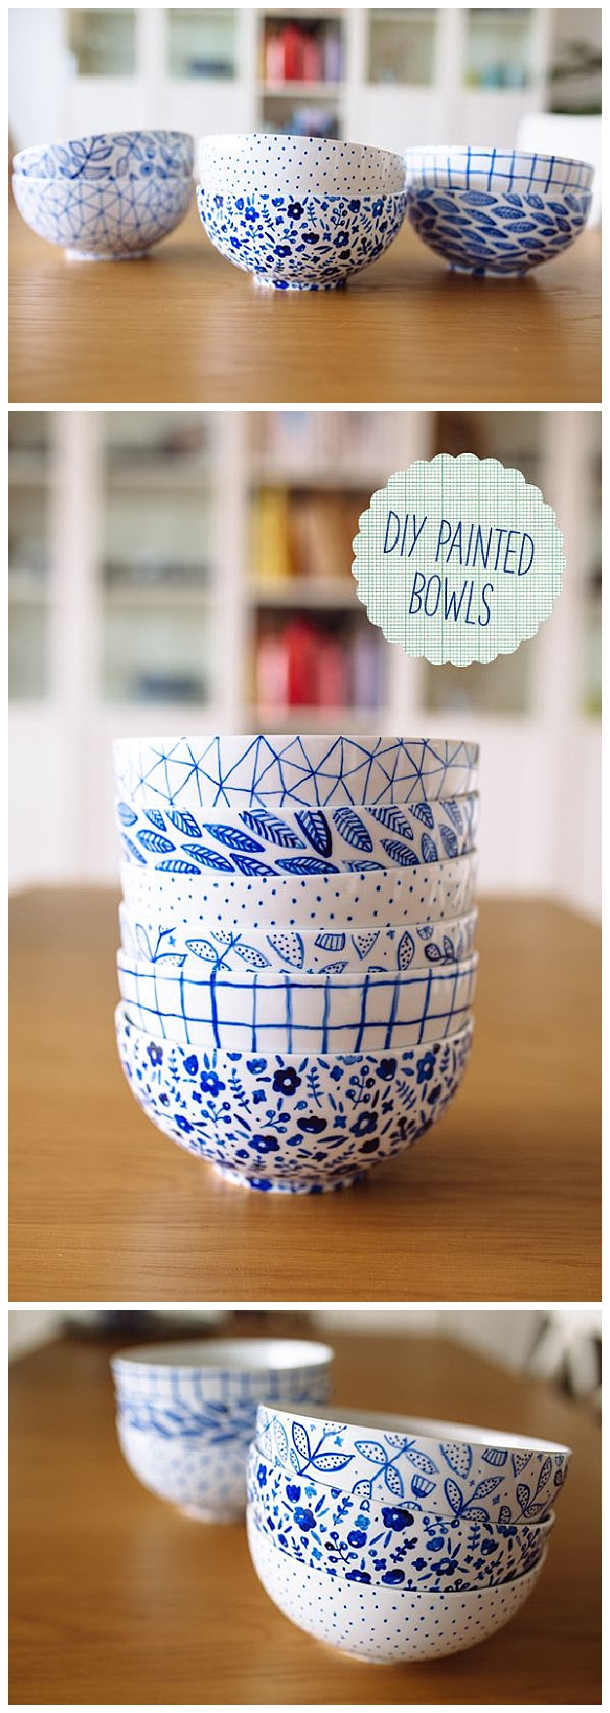 These would make the prettiest gifts - fill them with homemade baked treats! DIY Painted Bowls Tutorial | fellowfellow #diygifts #handmadegifts #diygiftideas #giftstomake #christmasgifts #giftsforher #giftideas